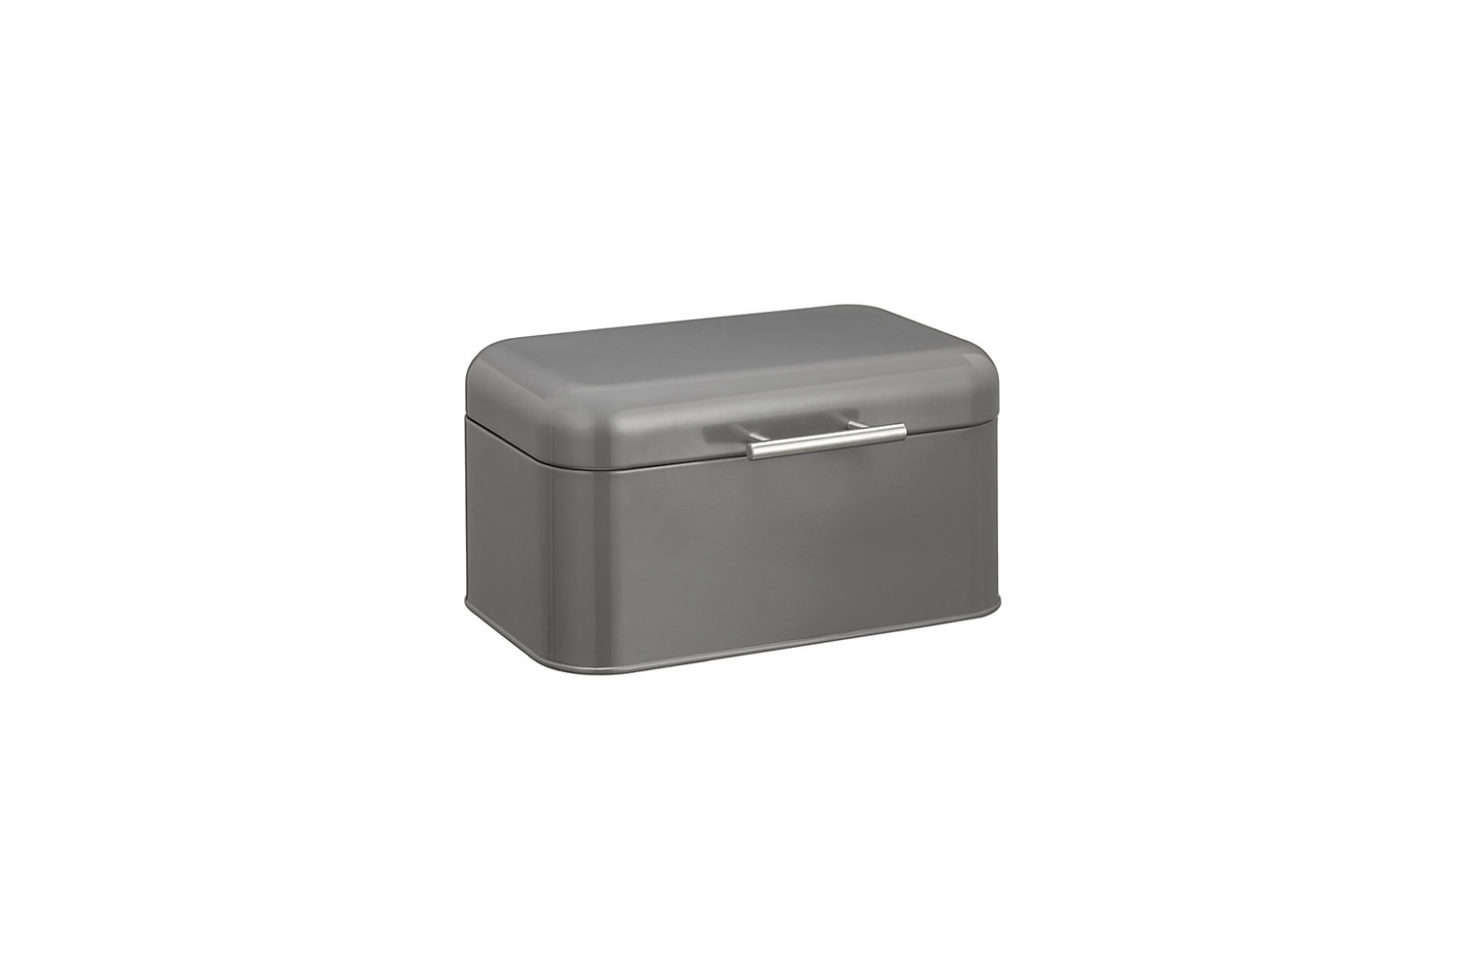 10 easy pieces metal bread bins not just for storing. Black Bedroom Furniture Sets. Home Design Ideas